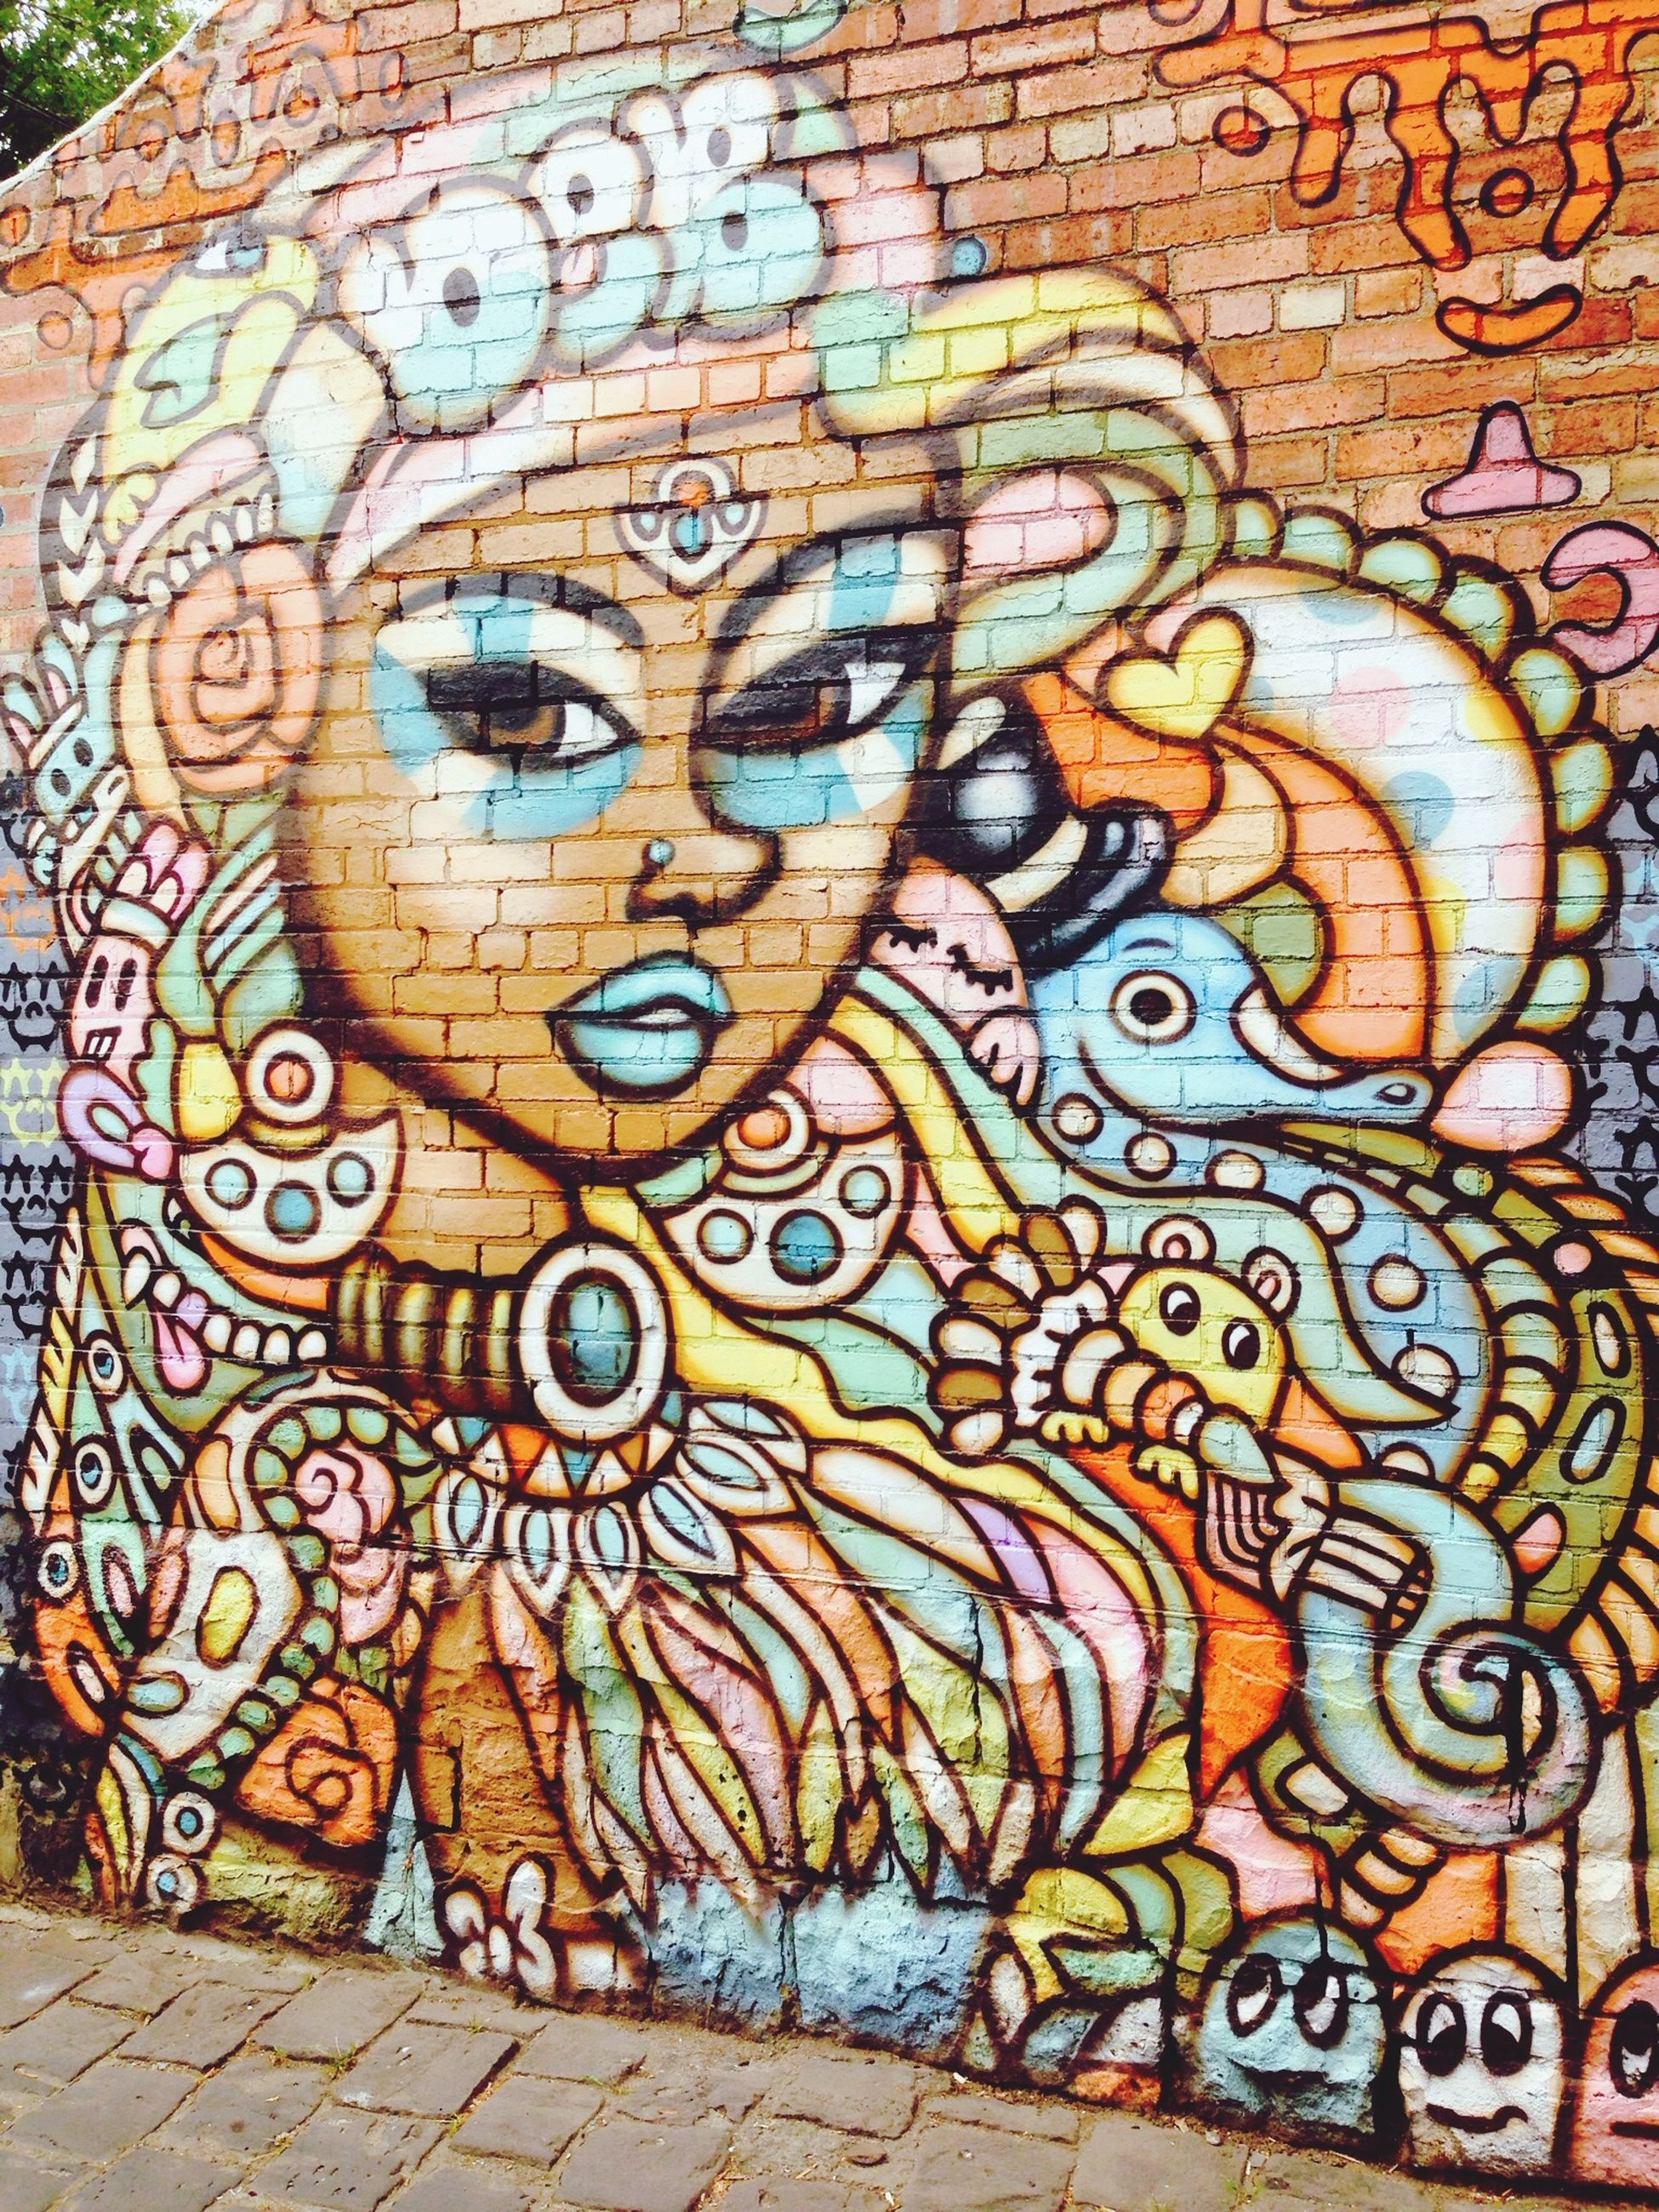 art, art and craft, creativity, design, pattern, wall - building feature, graffiti, architecture, indoors, built structure, floral pattern, full frame, ornate, multi colored, mural, backgrounds, wall, textured, no people, craft